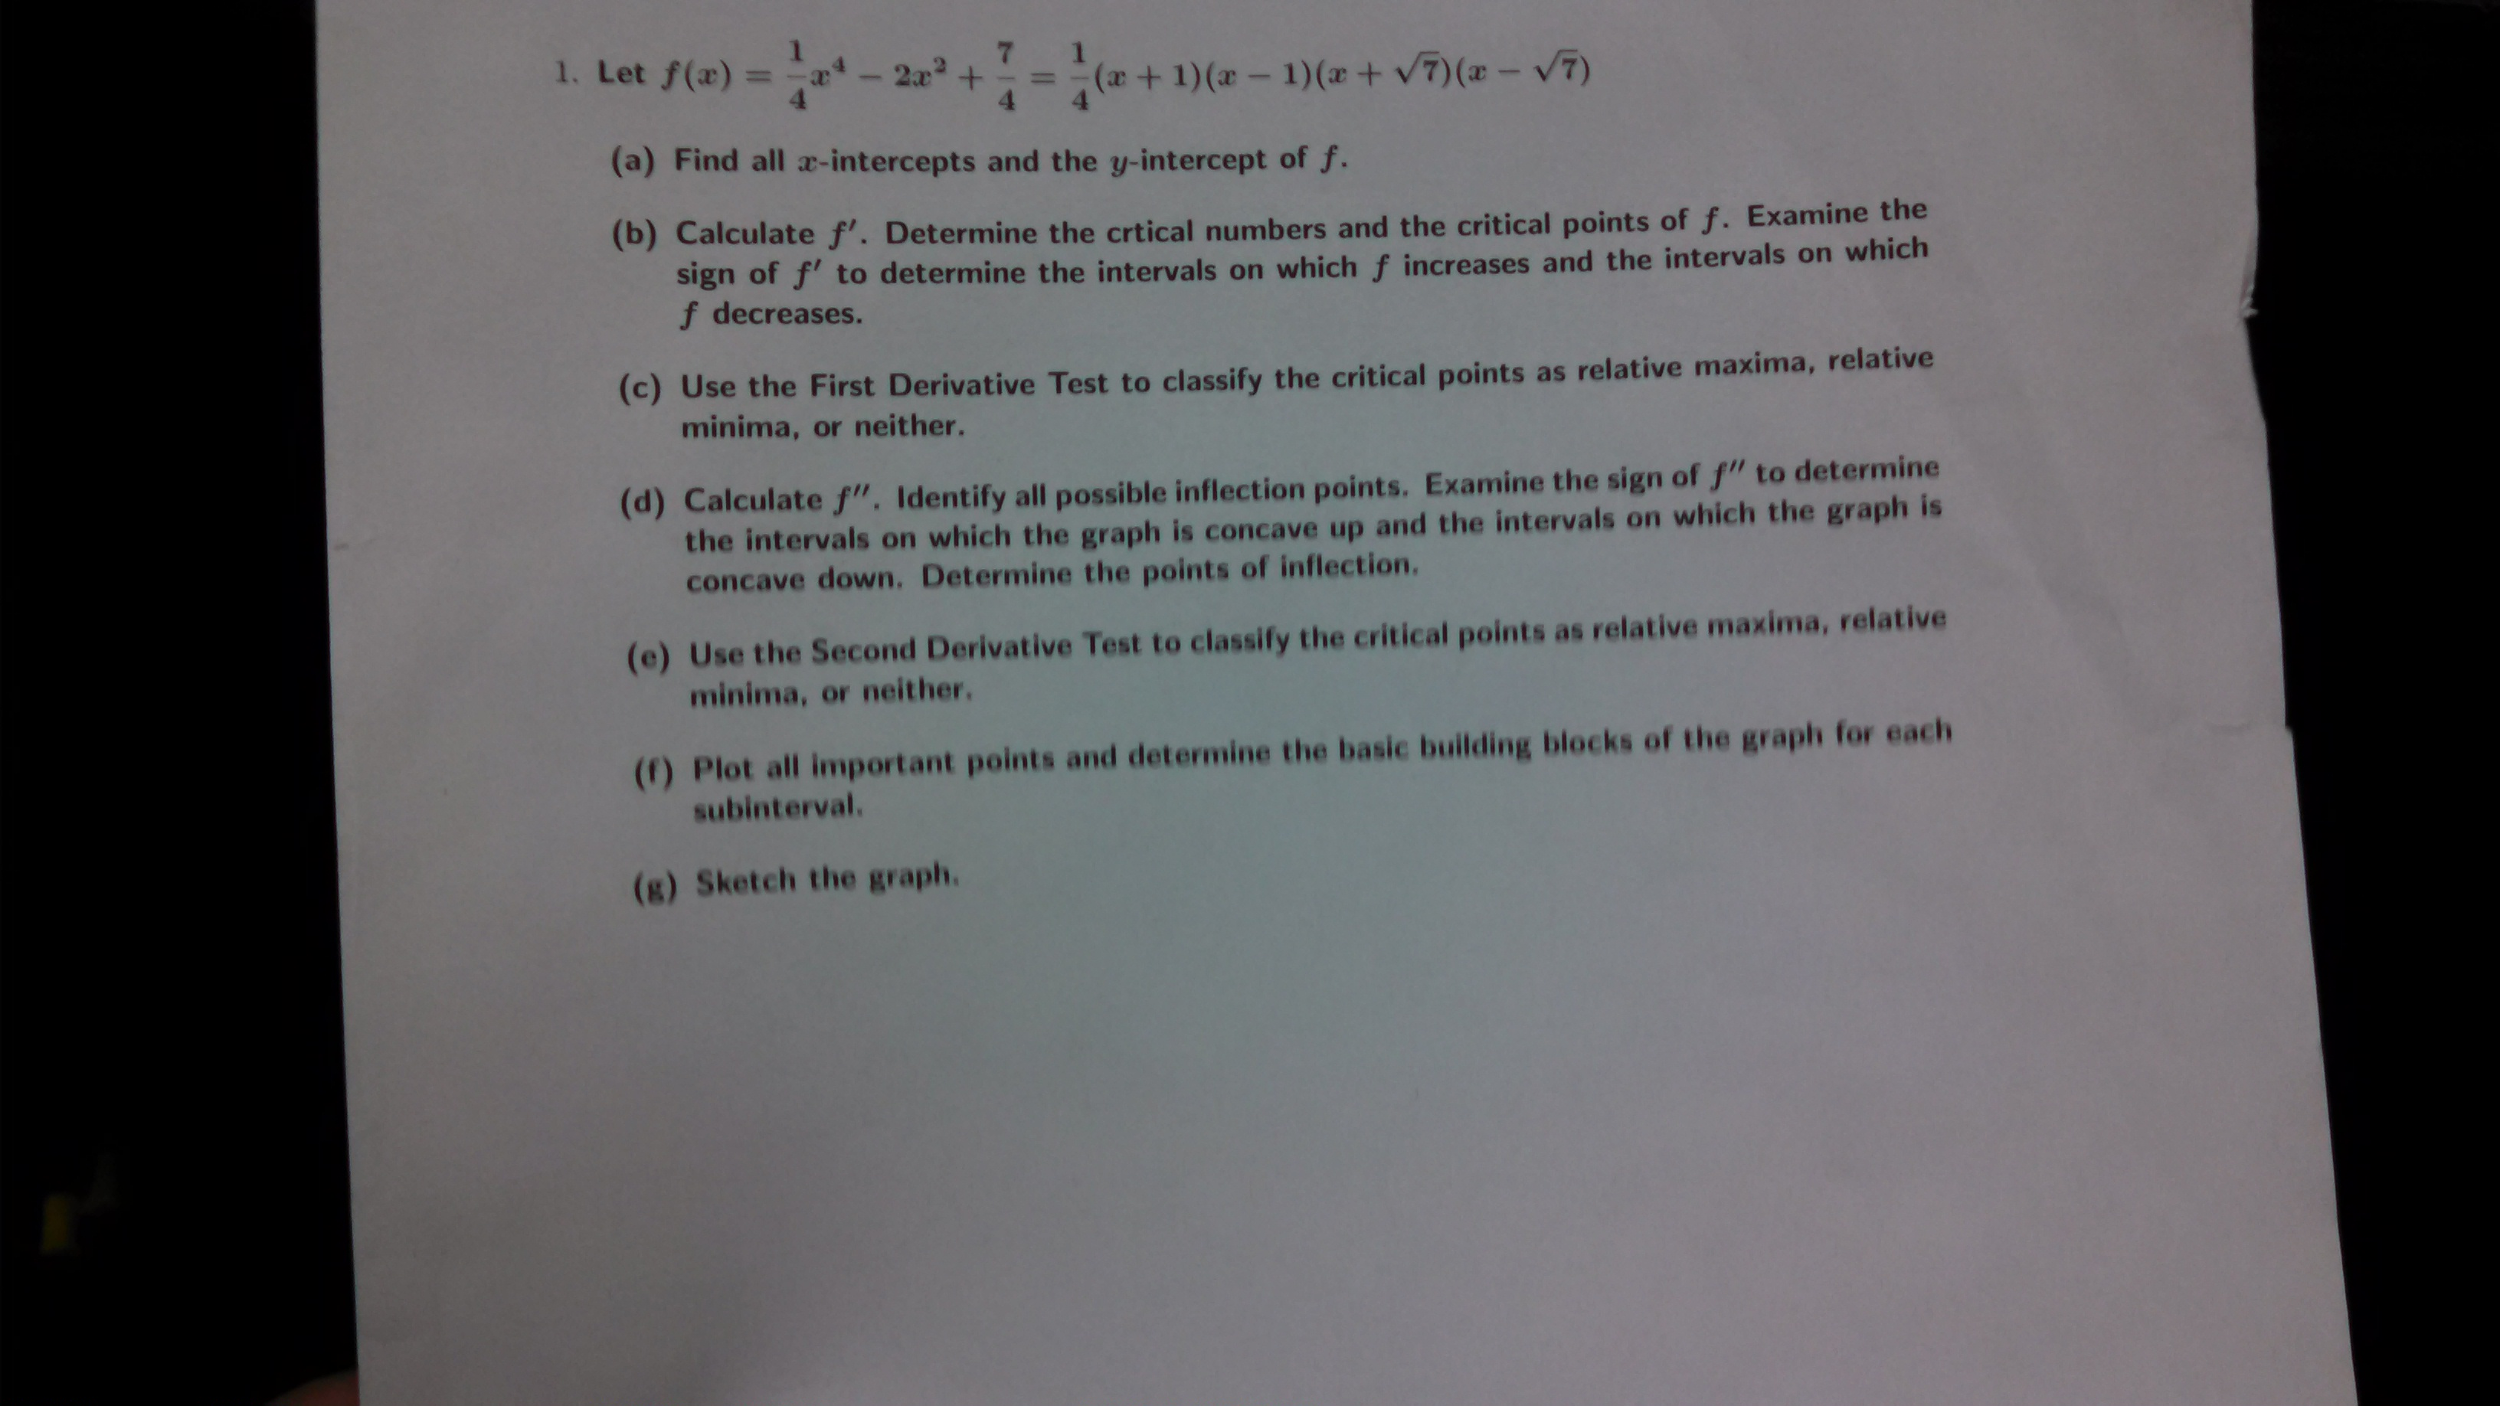 solve calculus homework help employment law essays i tried the software out on this 7th grade assignment and i got answers to all 14 problems in under